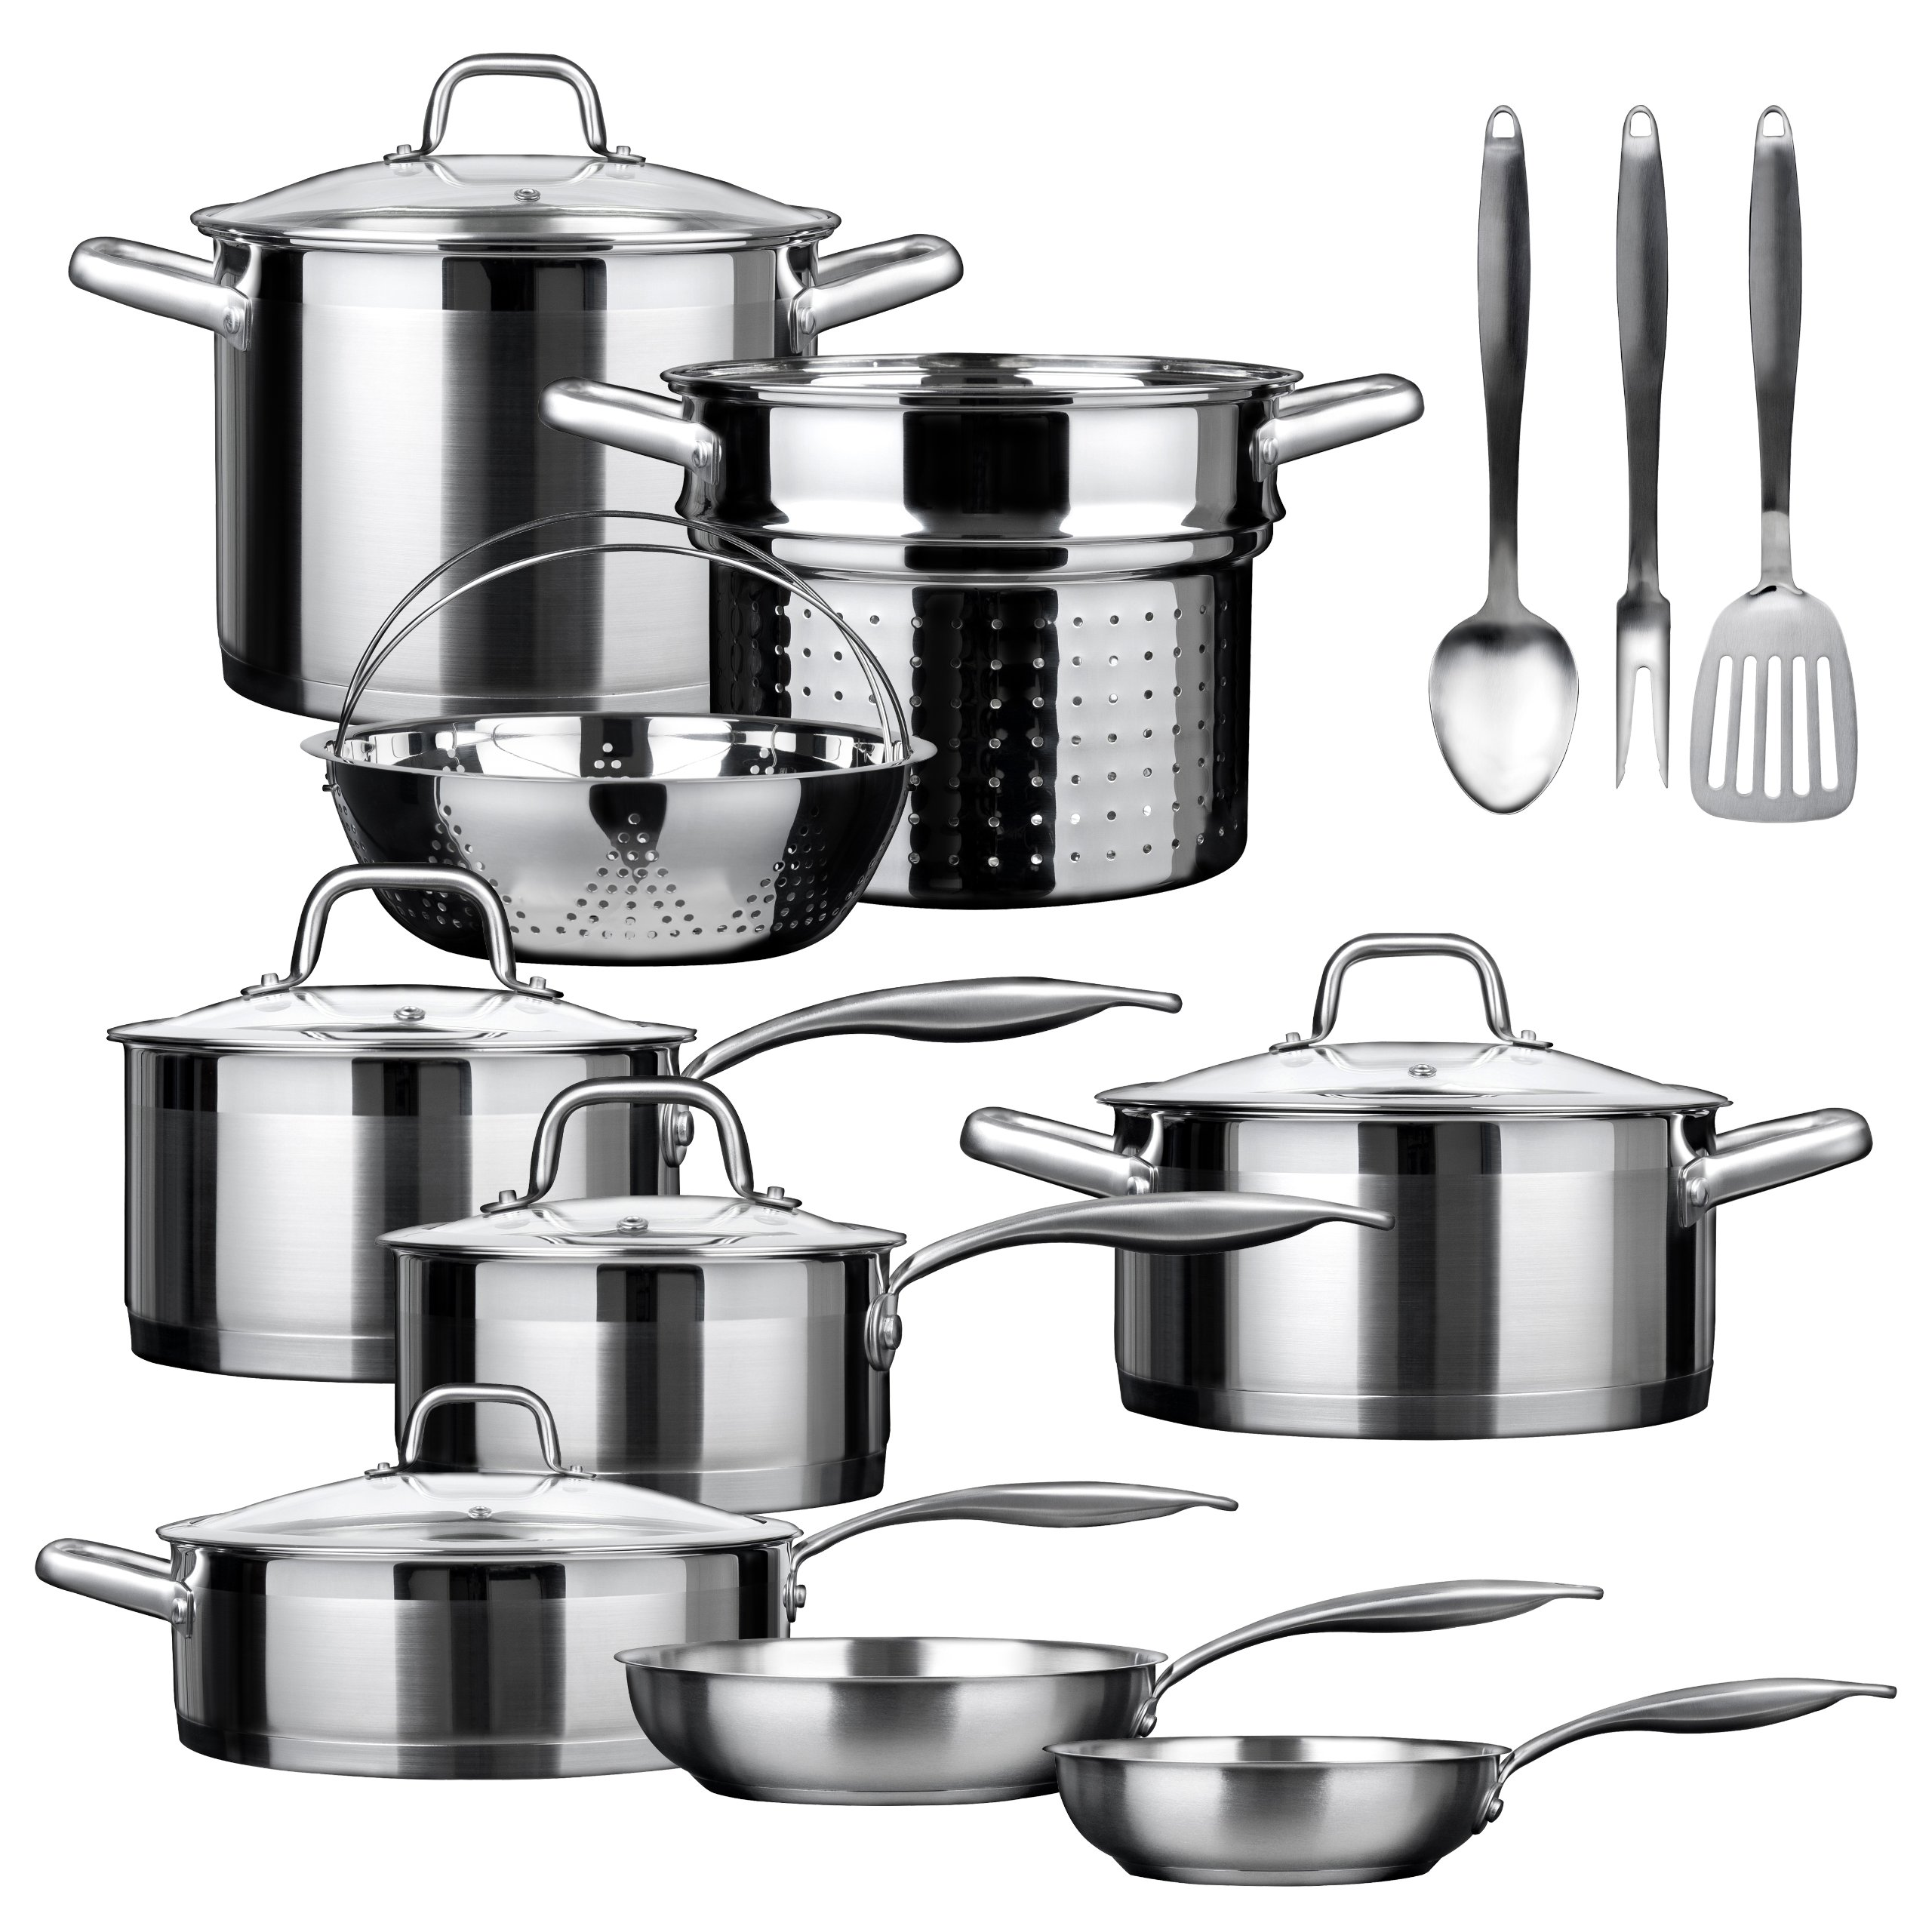 Duxtop SSIB-17 Professional 17 piece Stainless Steel Induction Cookware Set, Impact-bonded Technology